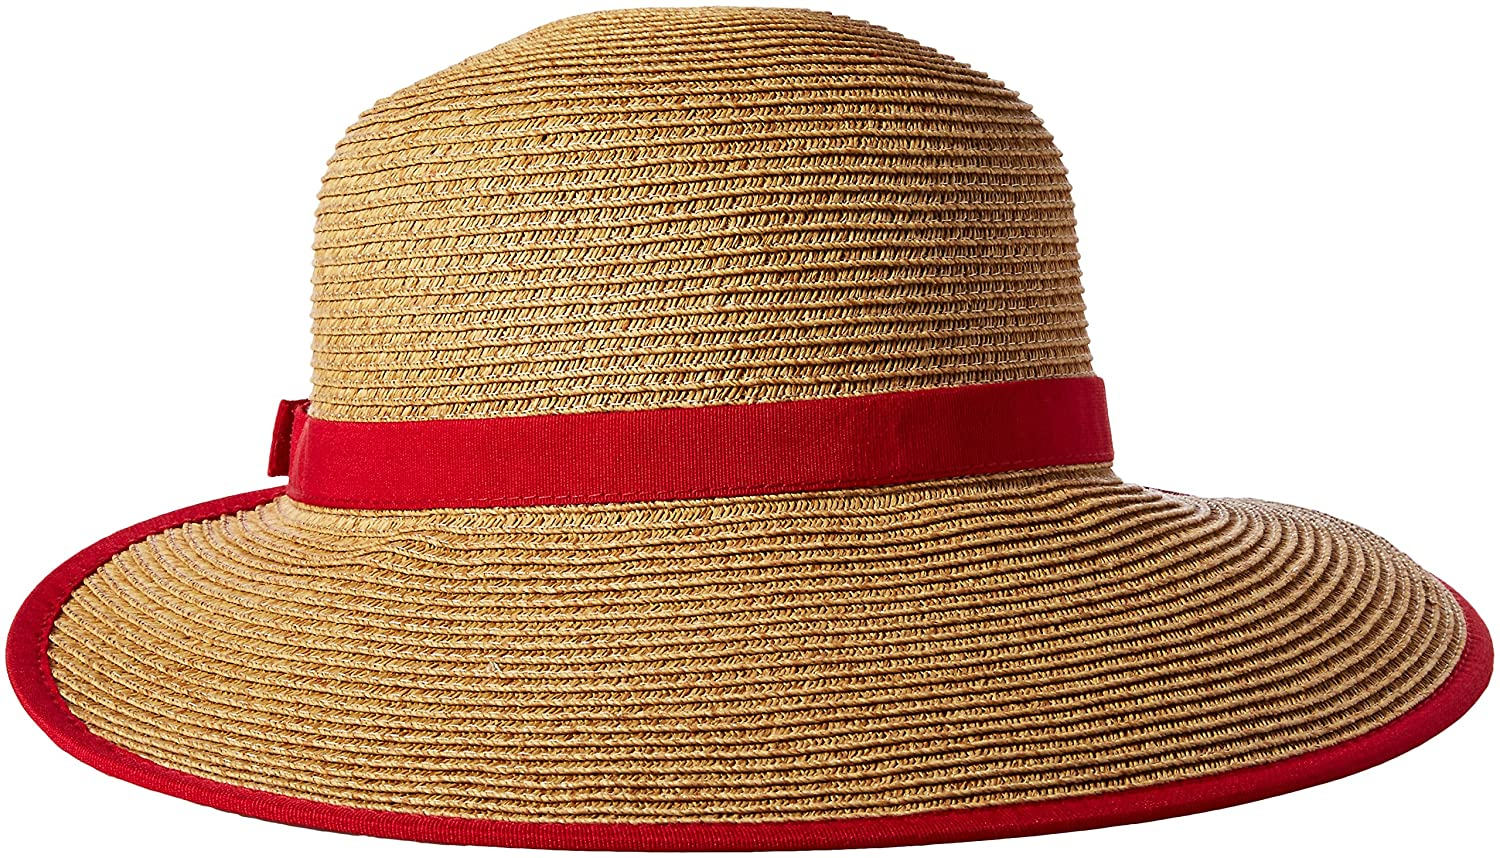 46617cba11c0 Nine West Women's Packable Brimless Floppy Hat, RED One Size at Amazon  Women's Clothing store: